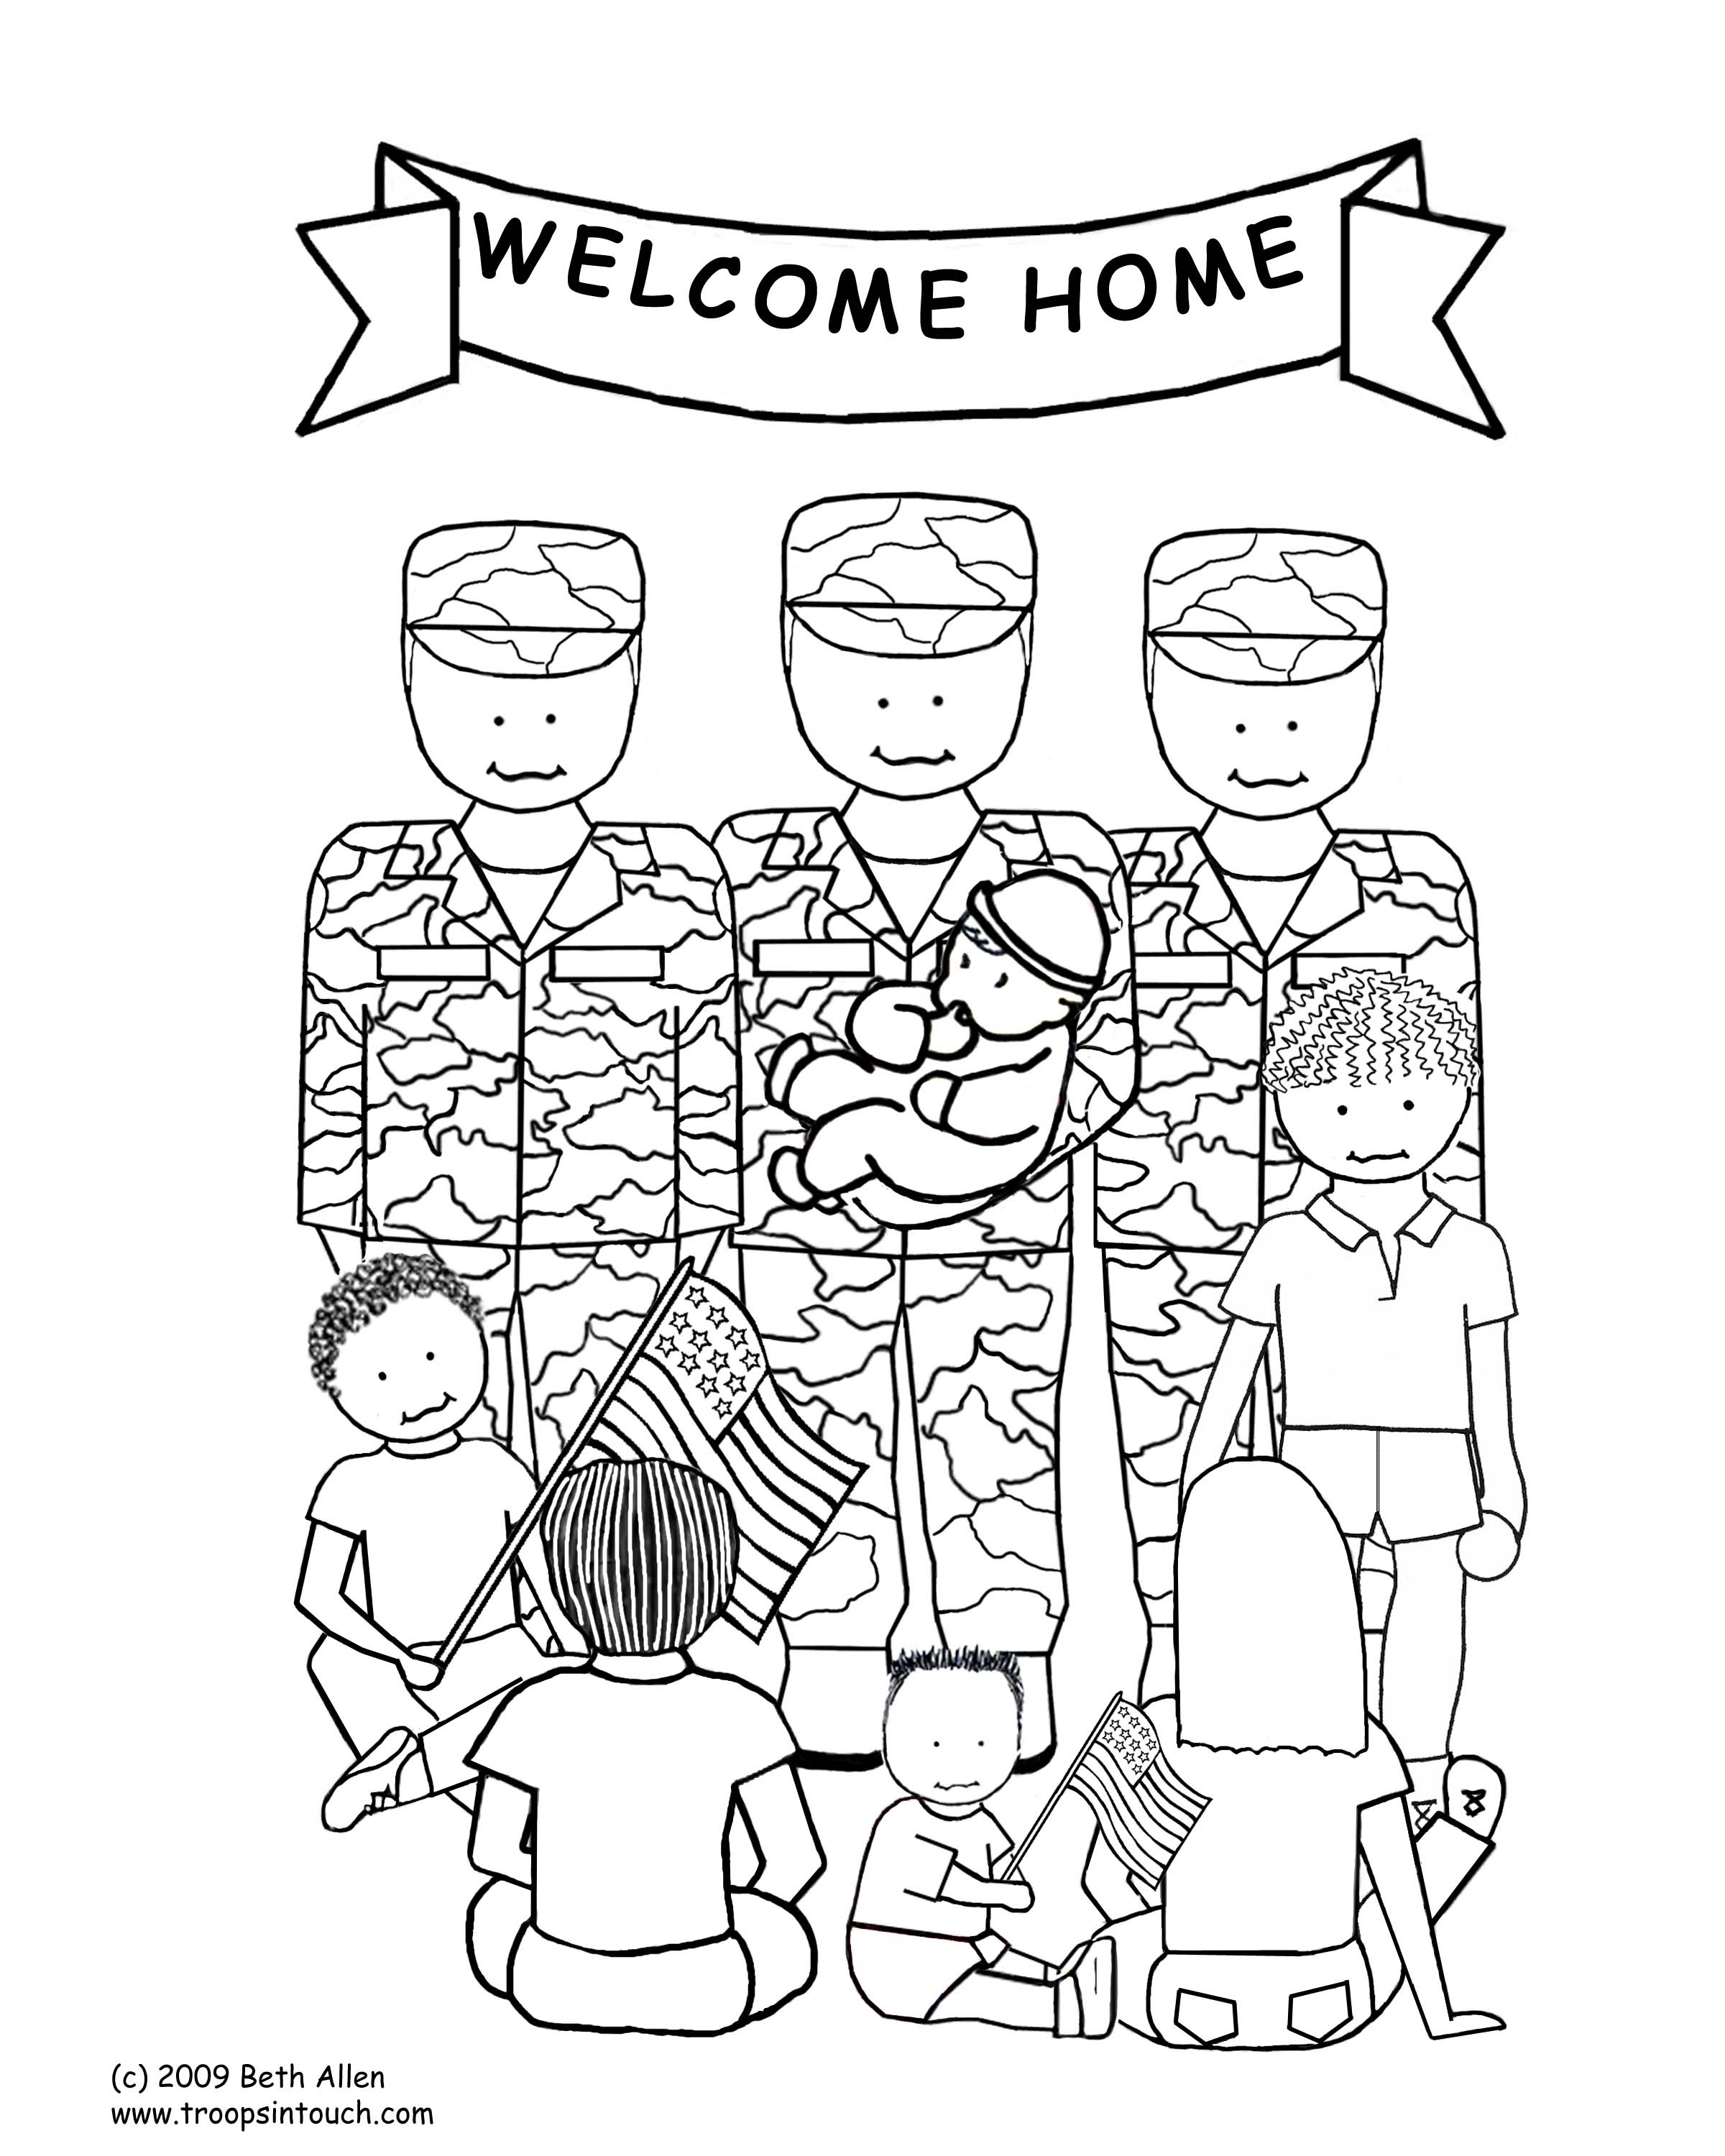 Free Printable Military Greeting Cards. Printable. Free Printable - Free Printable Military Greeting Cards